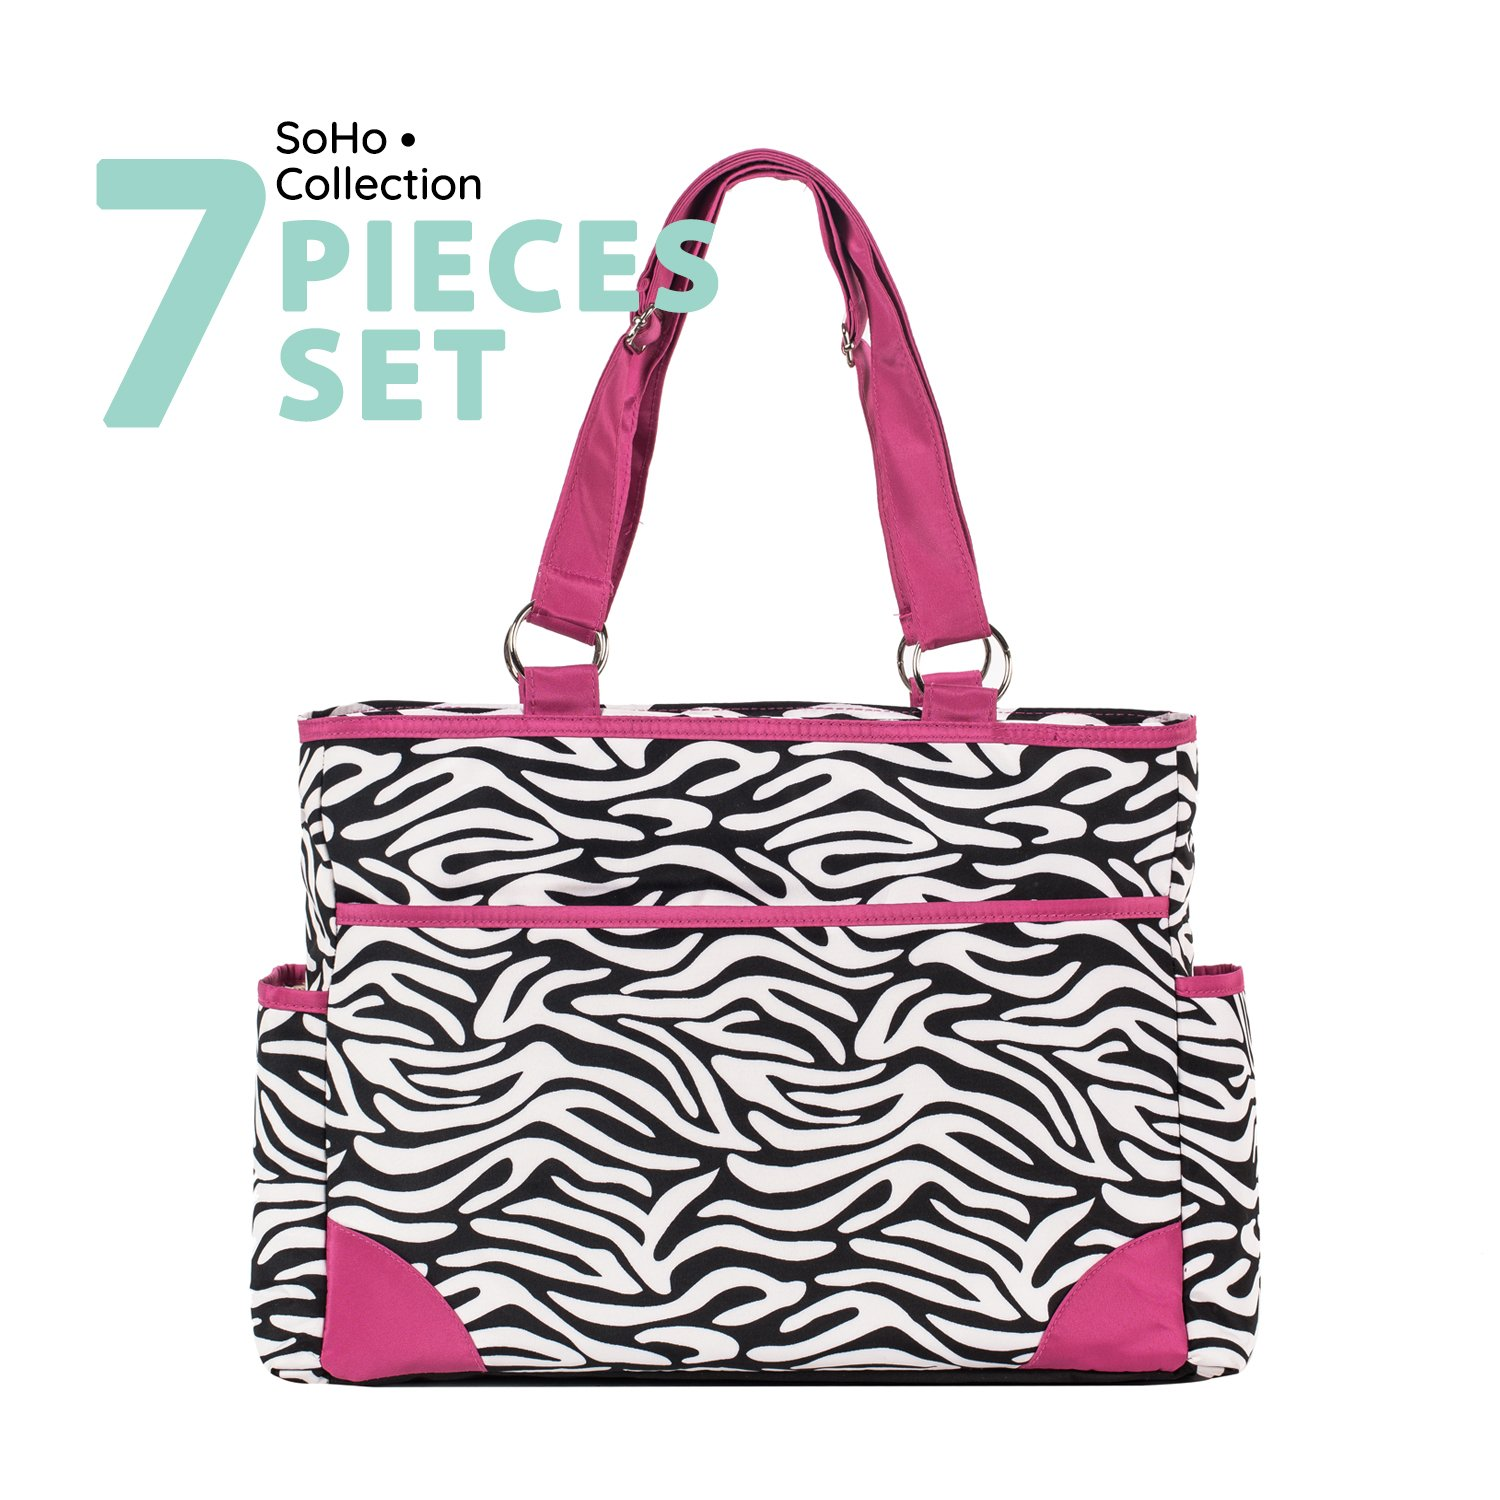 SoHo diaper bag Pink zebra 6 pieces set nappy tote bag large capacity for baby mom dad stylish insulated unisex multifuncation waterproof includes changing pad stroller straps Limited time offer